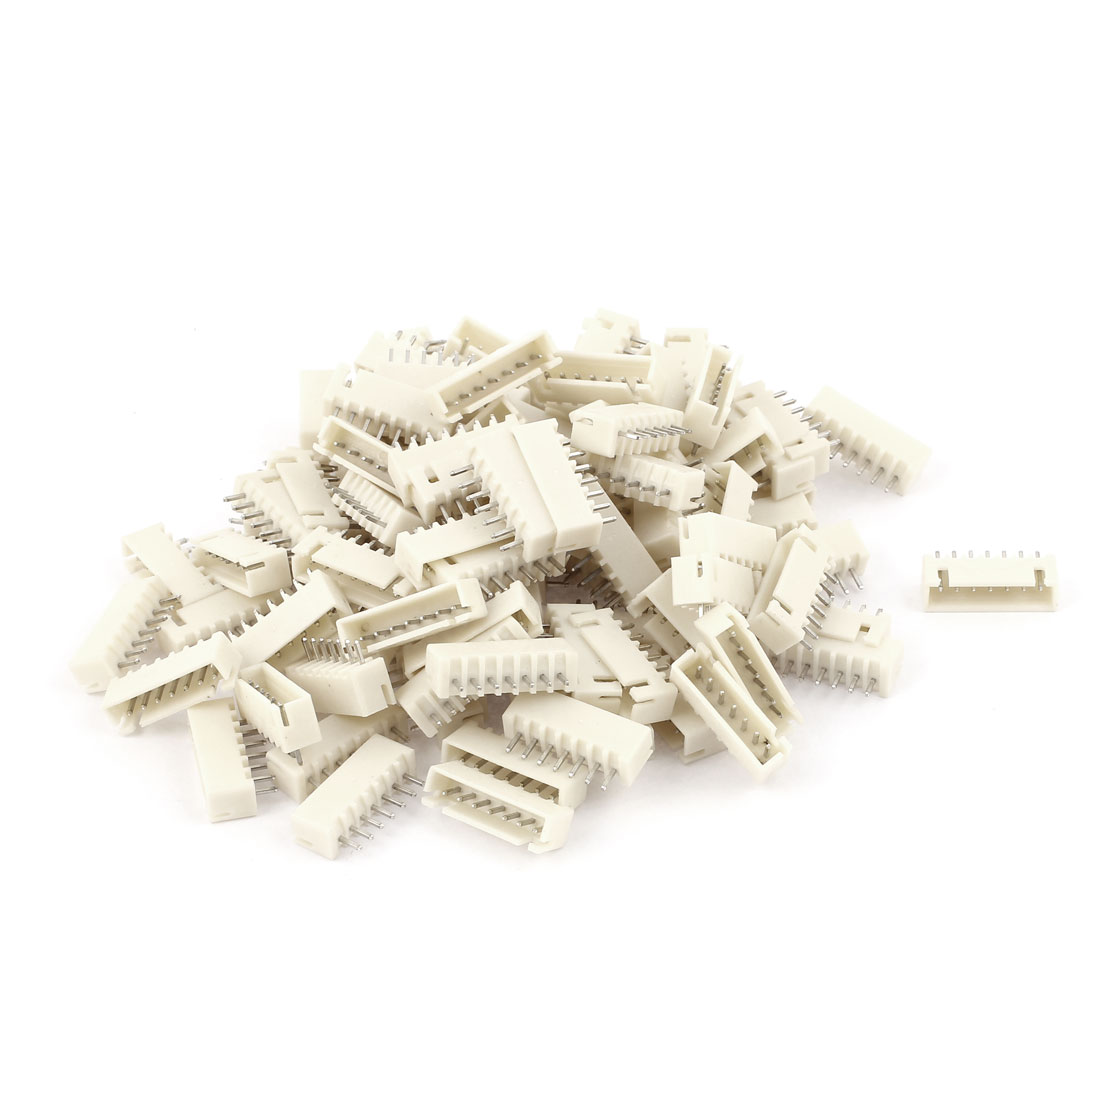 100pcs 2.54mm Pitch Male 7 Pins RC Lipo Battery Balance JST XH Header Connector